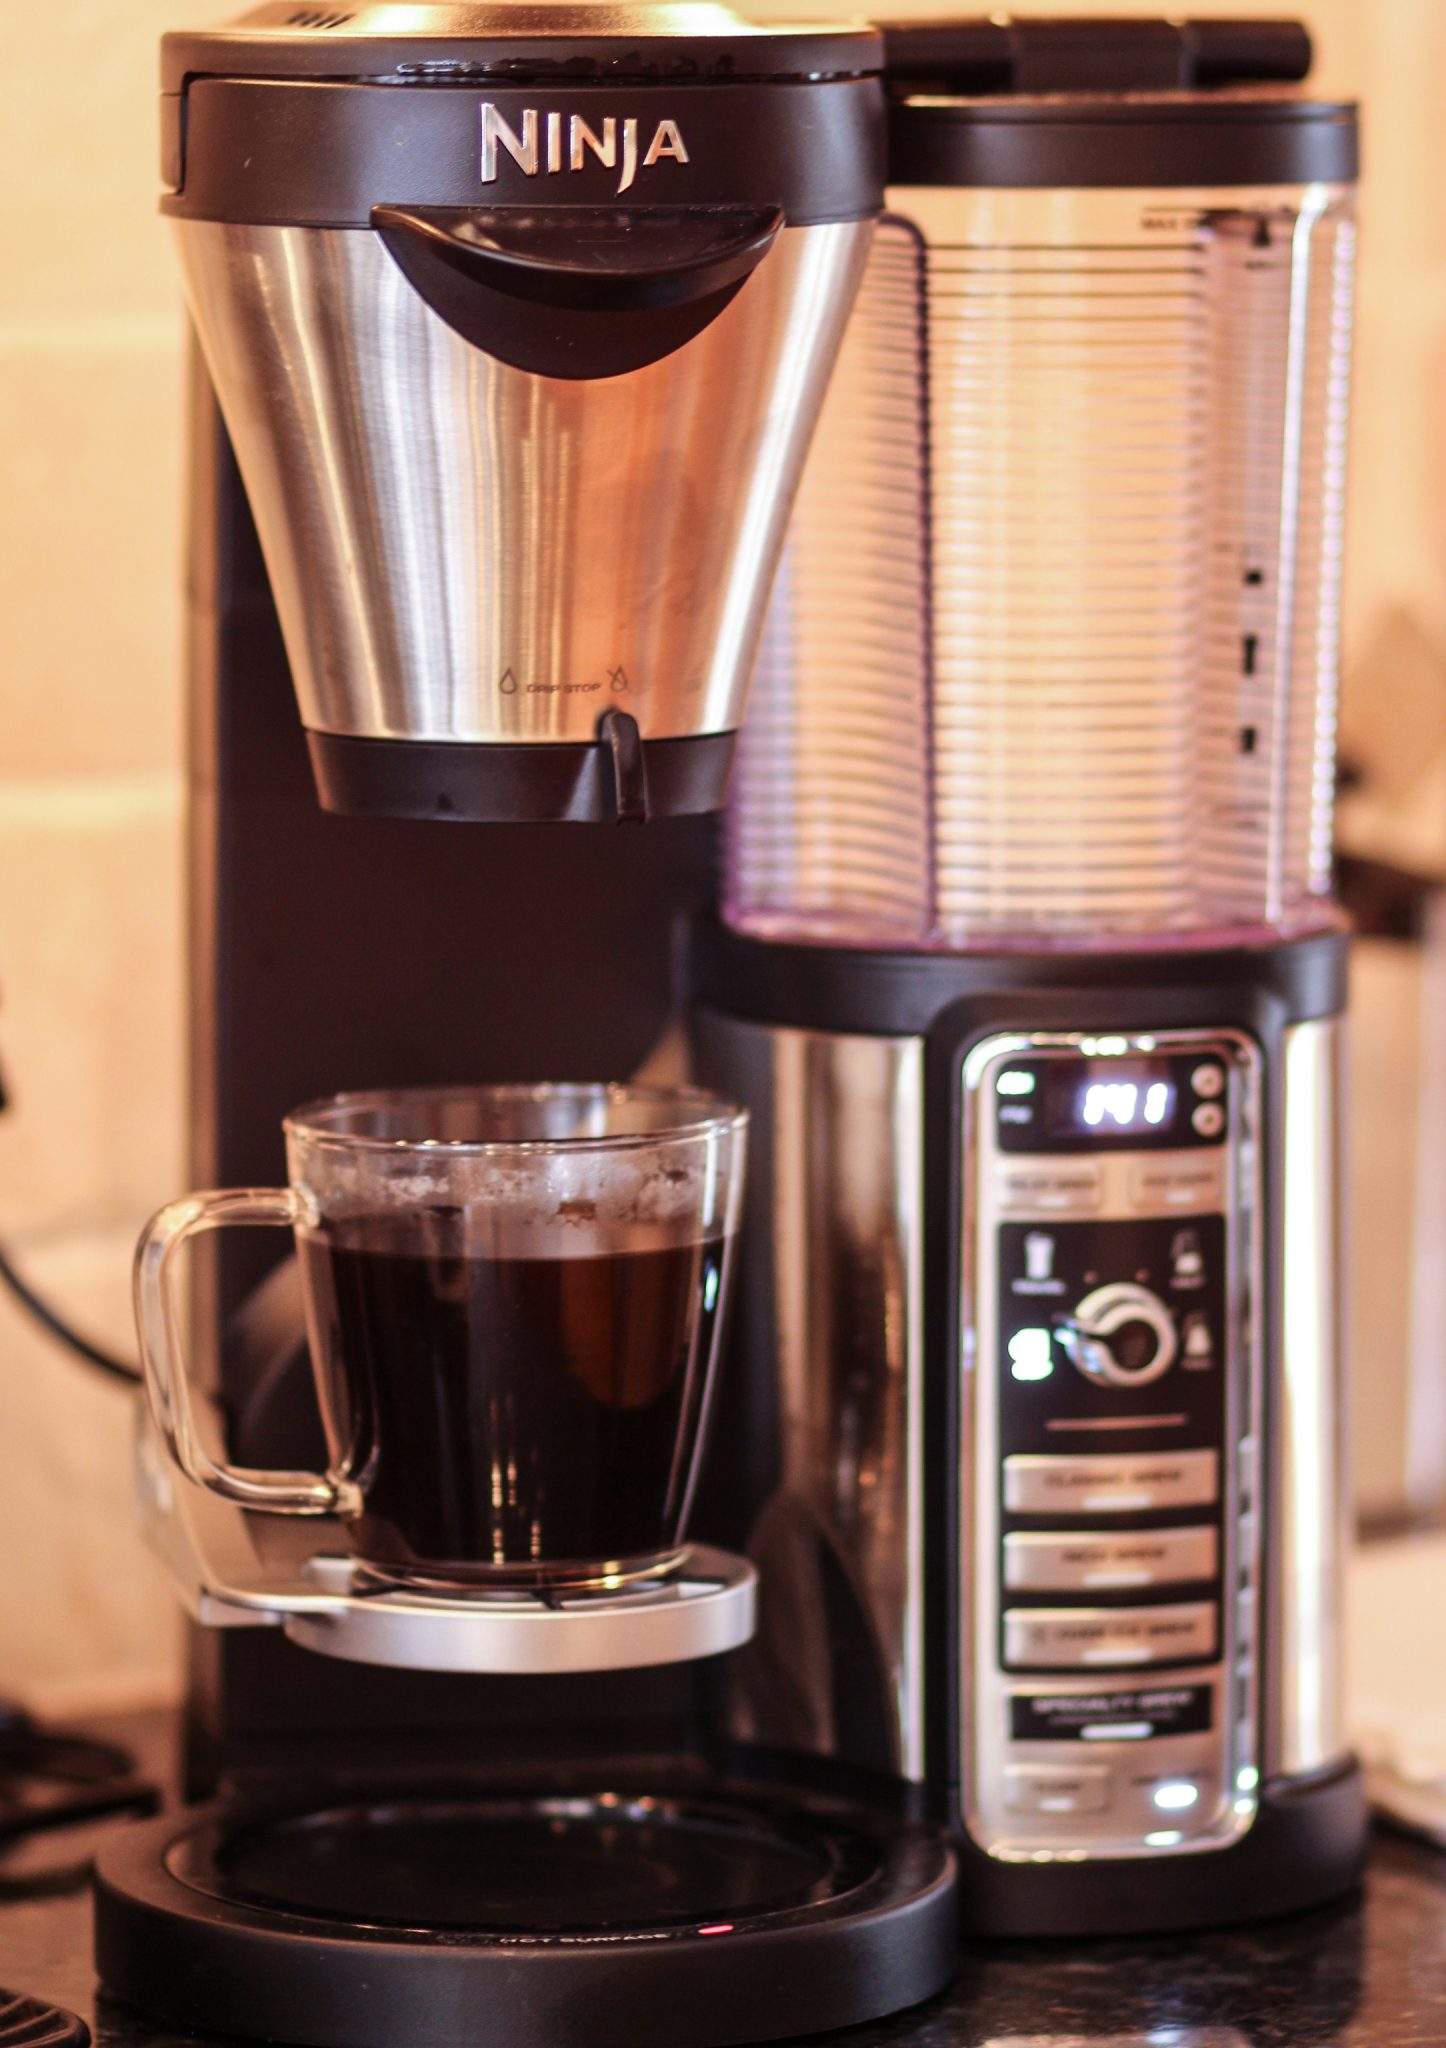 Italian Coffee Maker Bed Bath And Beyond : The Best Coffee Makers: Ninja Coffee Bar Brewer, Nespresso Citiz, and Technivorm Moccamaster ...